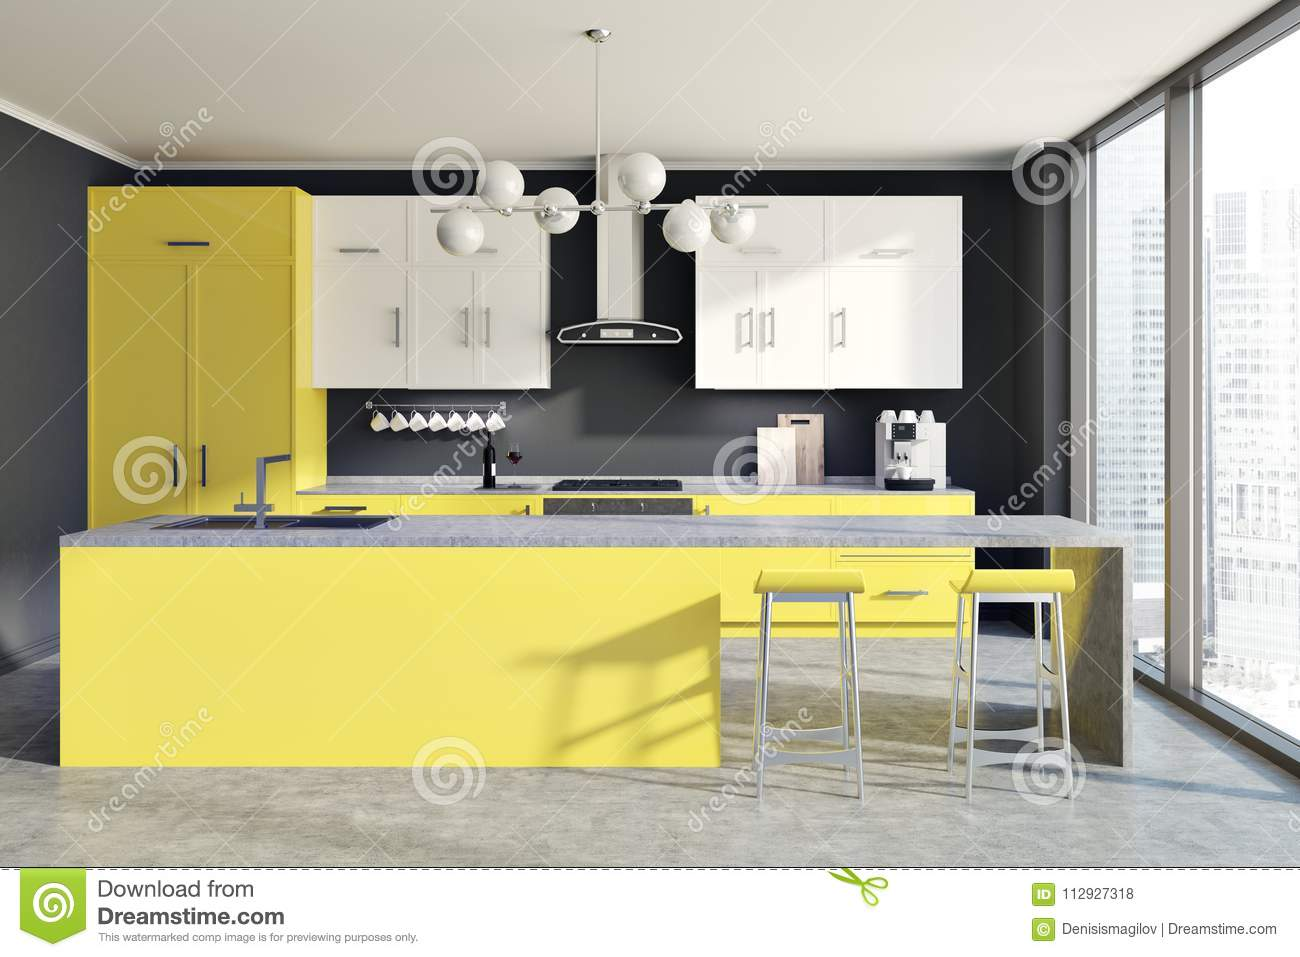 Gray wall kitchen interior with yellow and white counters and a bar with stools 3d rendering mock up